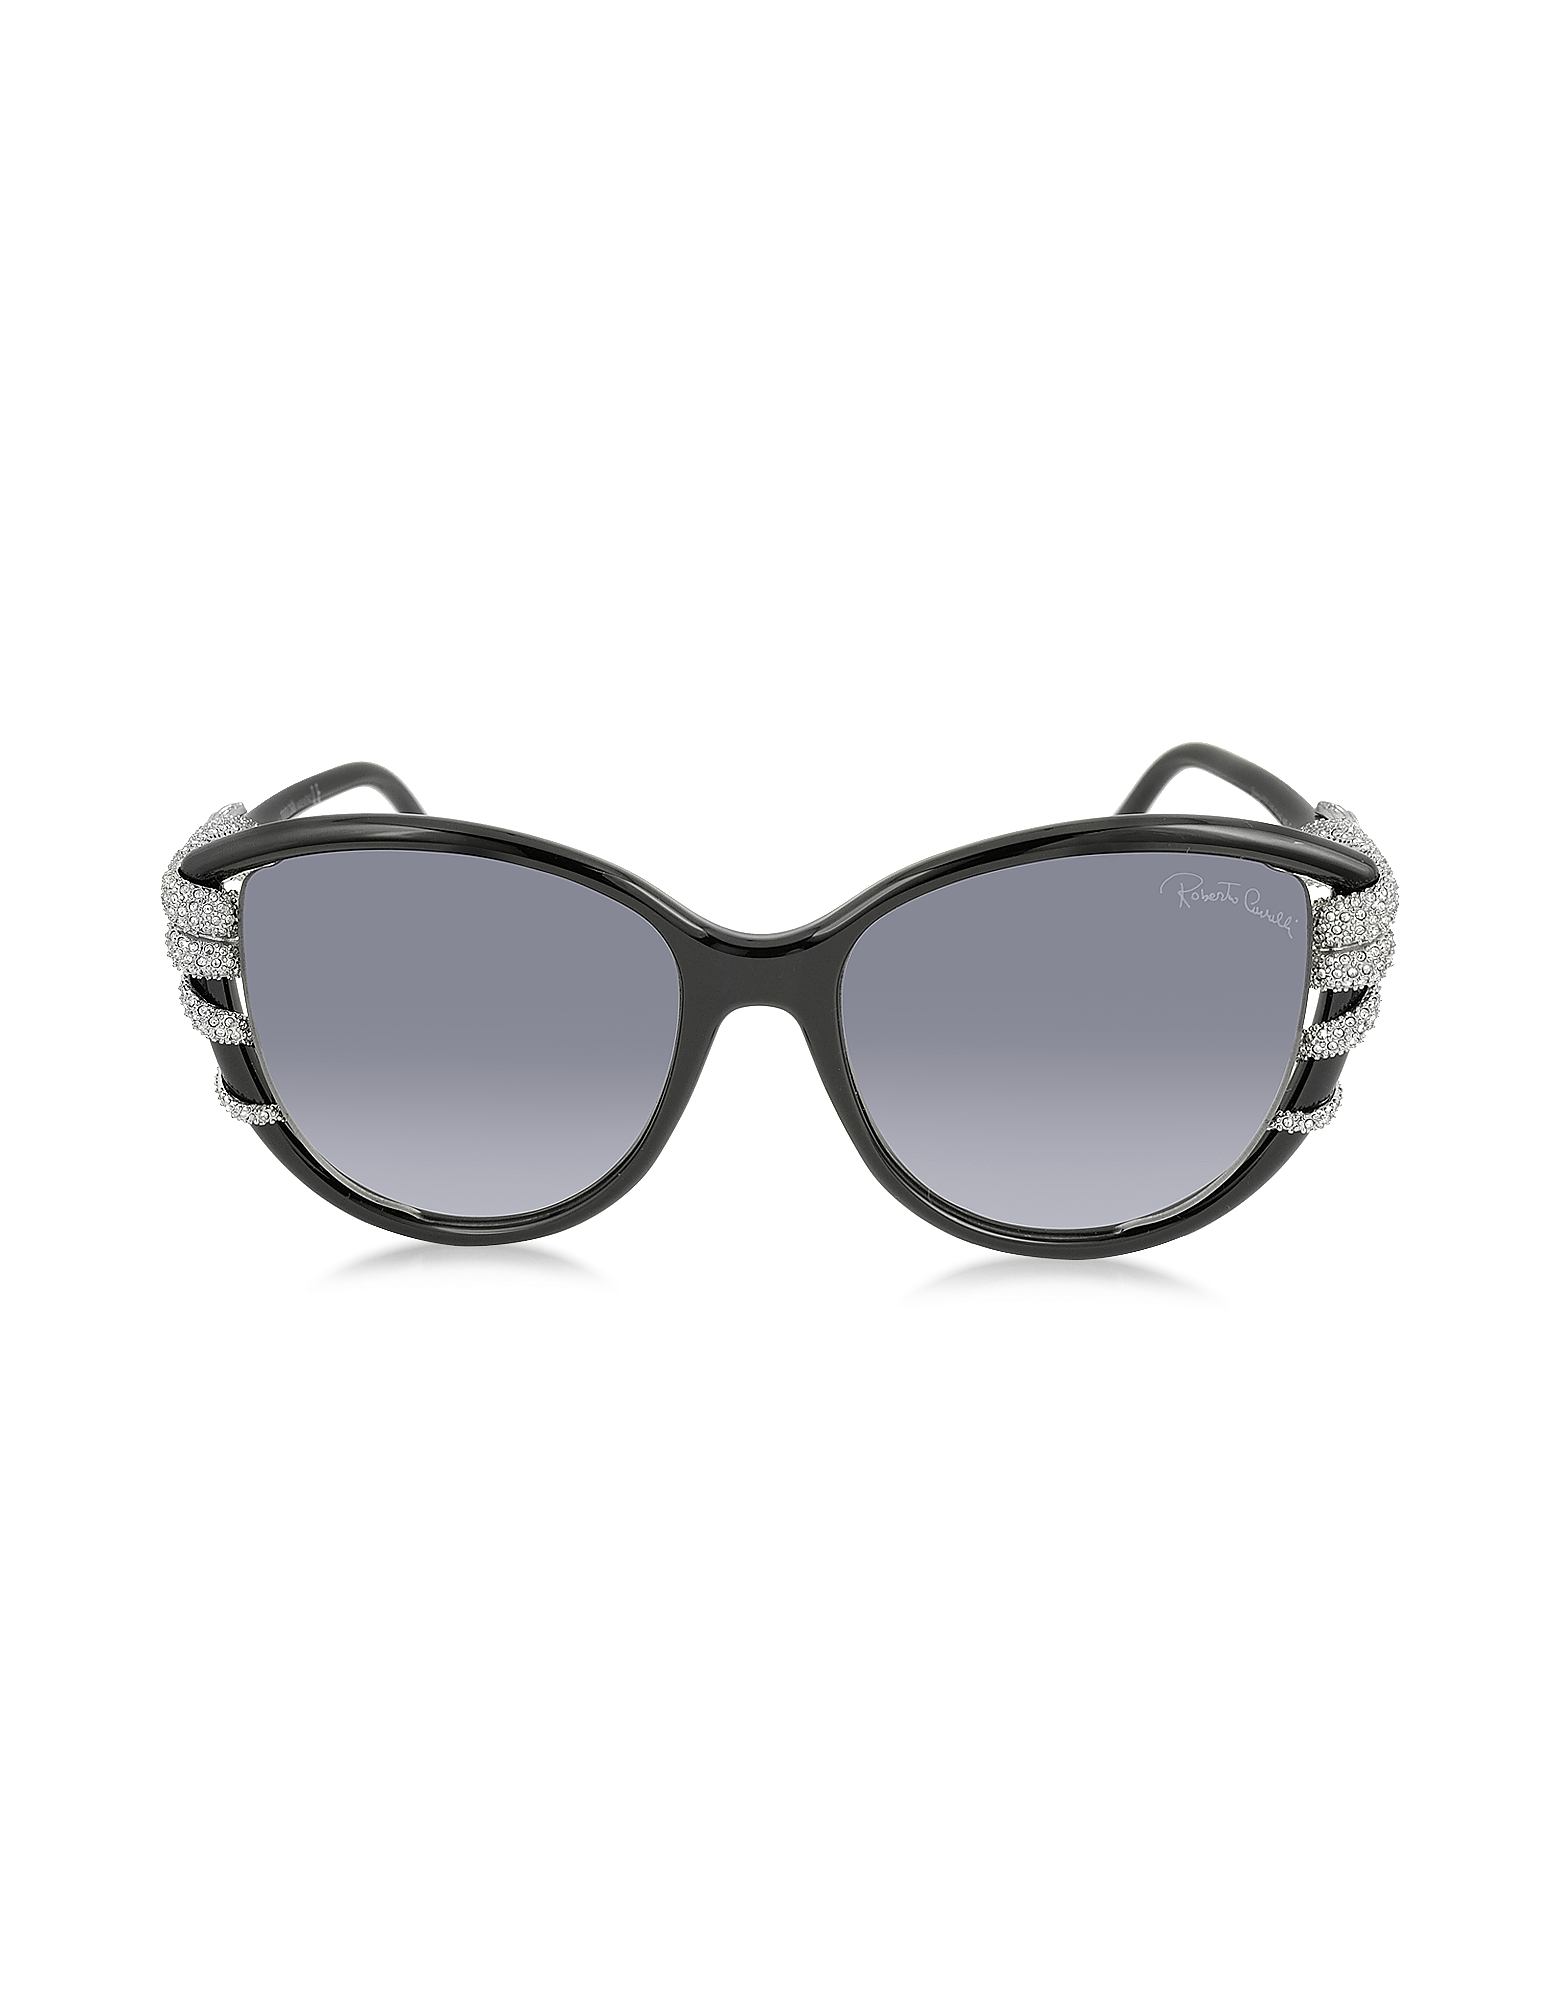 Roberto Cavalli Sunglasses, STEROPE 972S Acetate and Crystals Cat Eye Women's Sunglasses